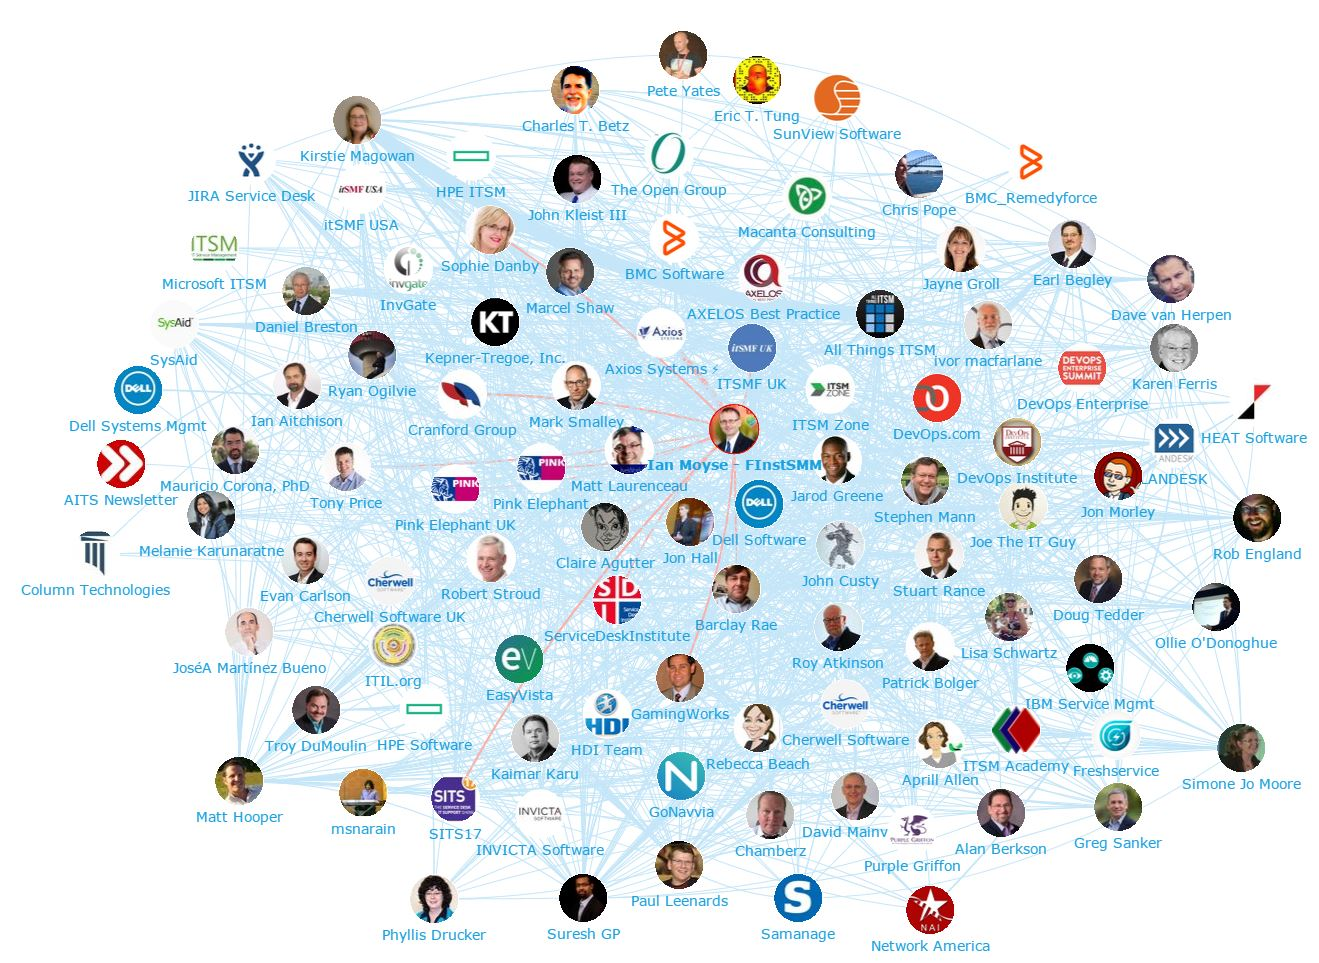 Onalytica - IT Service management TOp 100 Influencers and Brands - Network Map 1 (Ian Moyse)